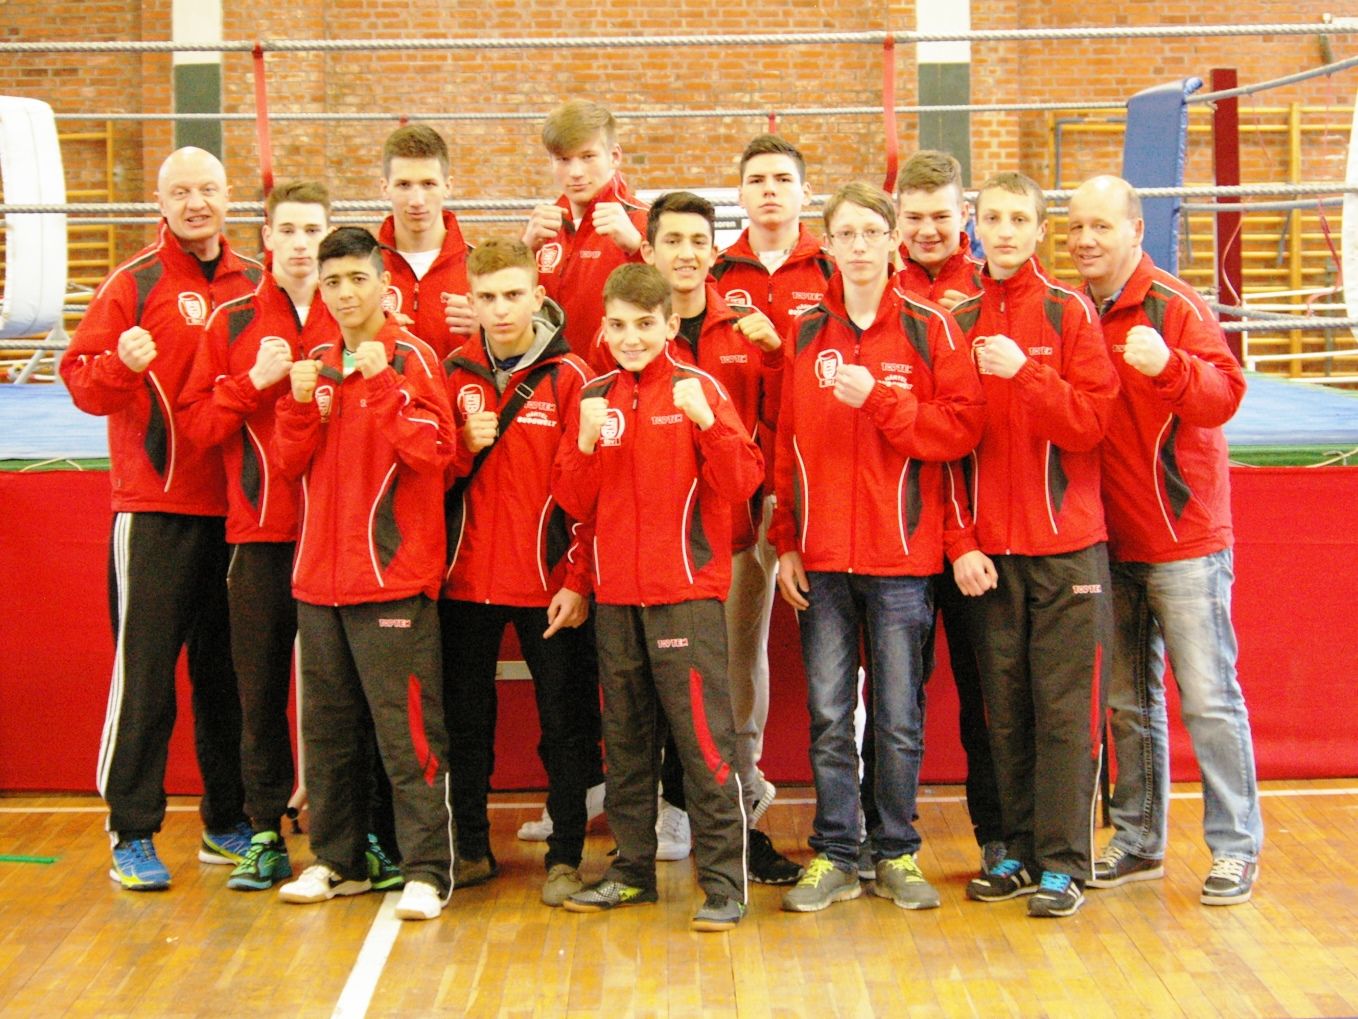 DM Junioren u17 2016 in Juliusruh